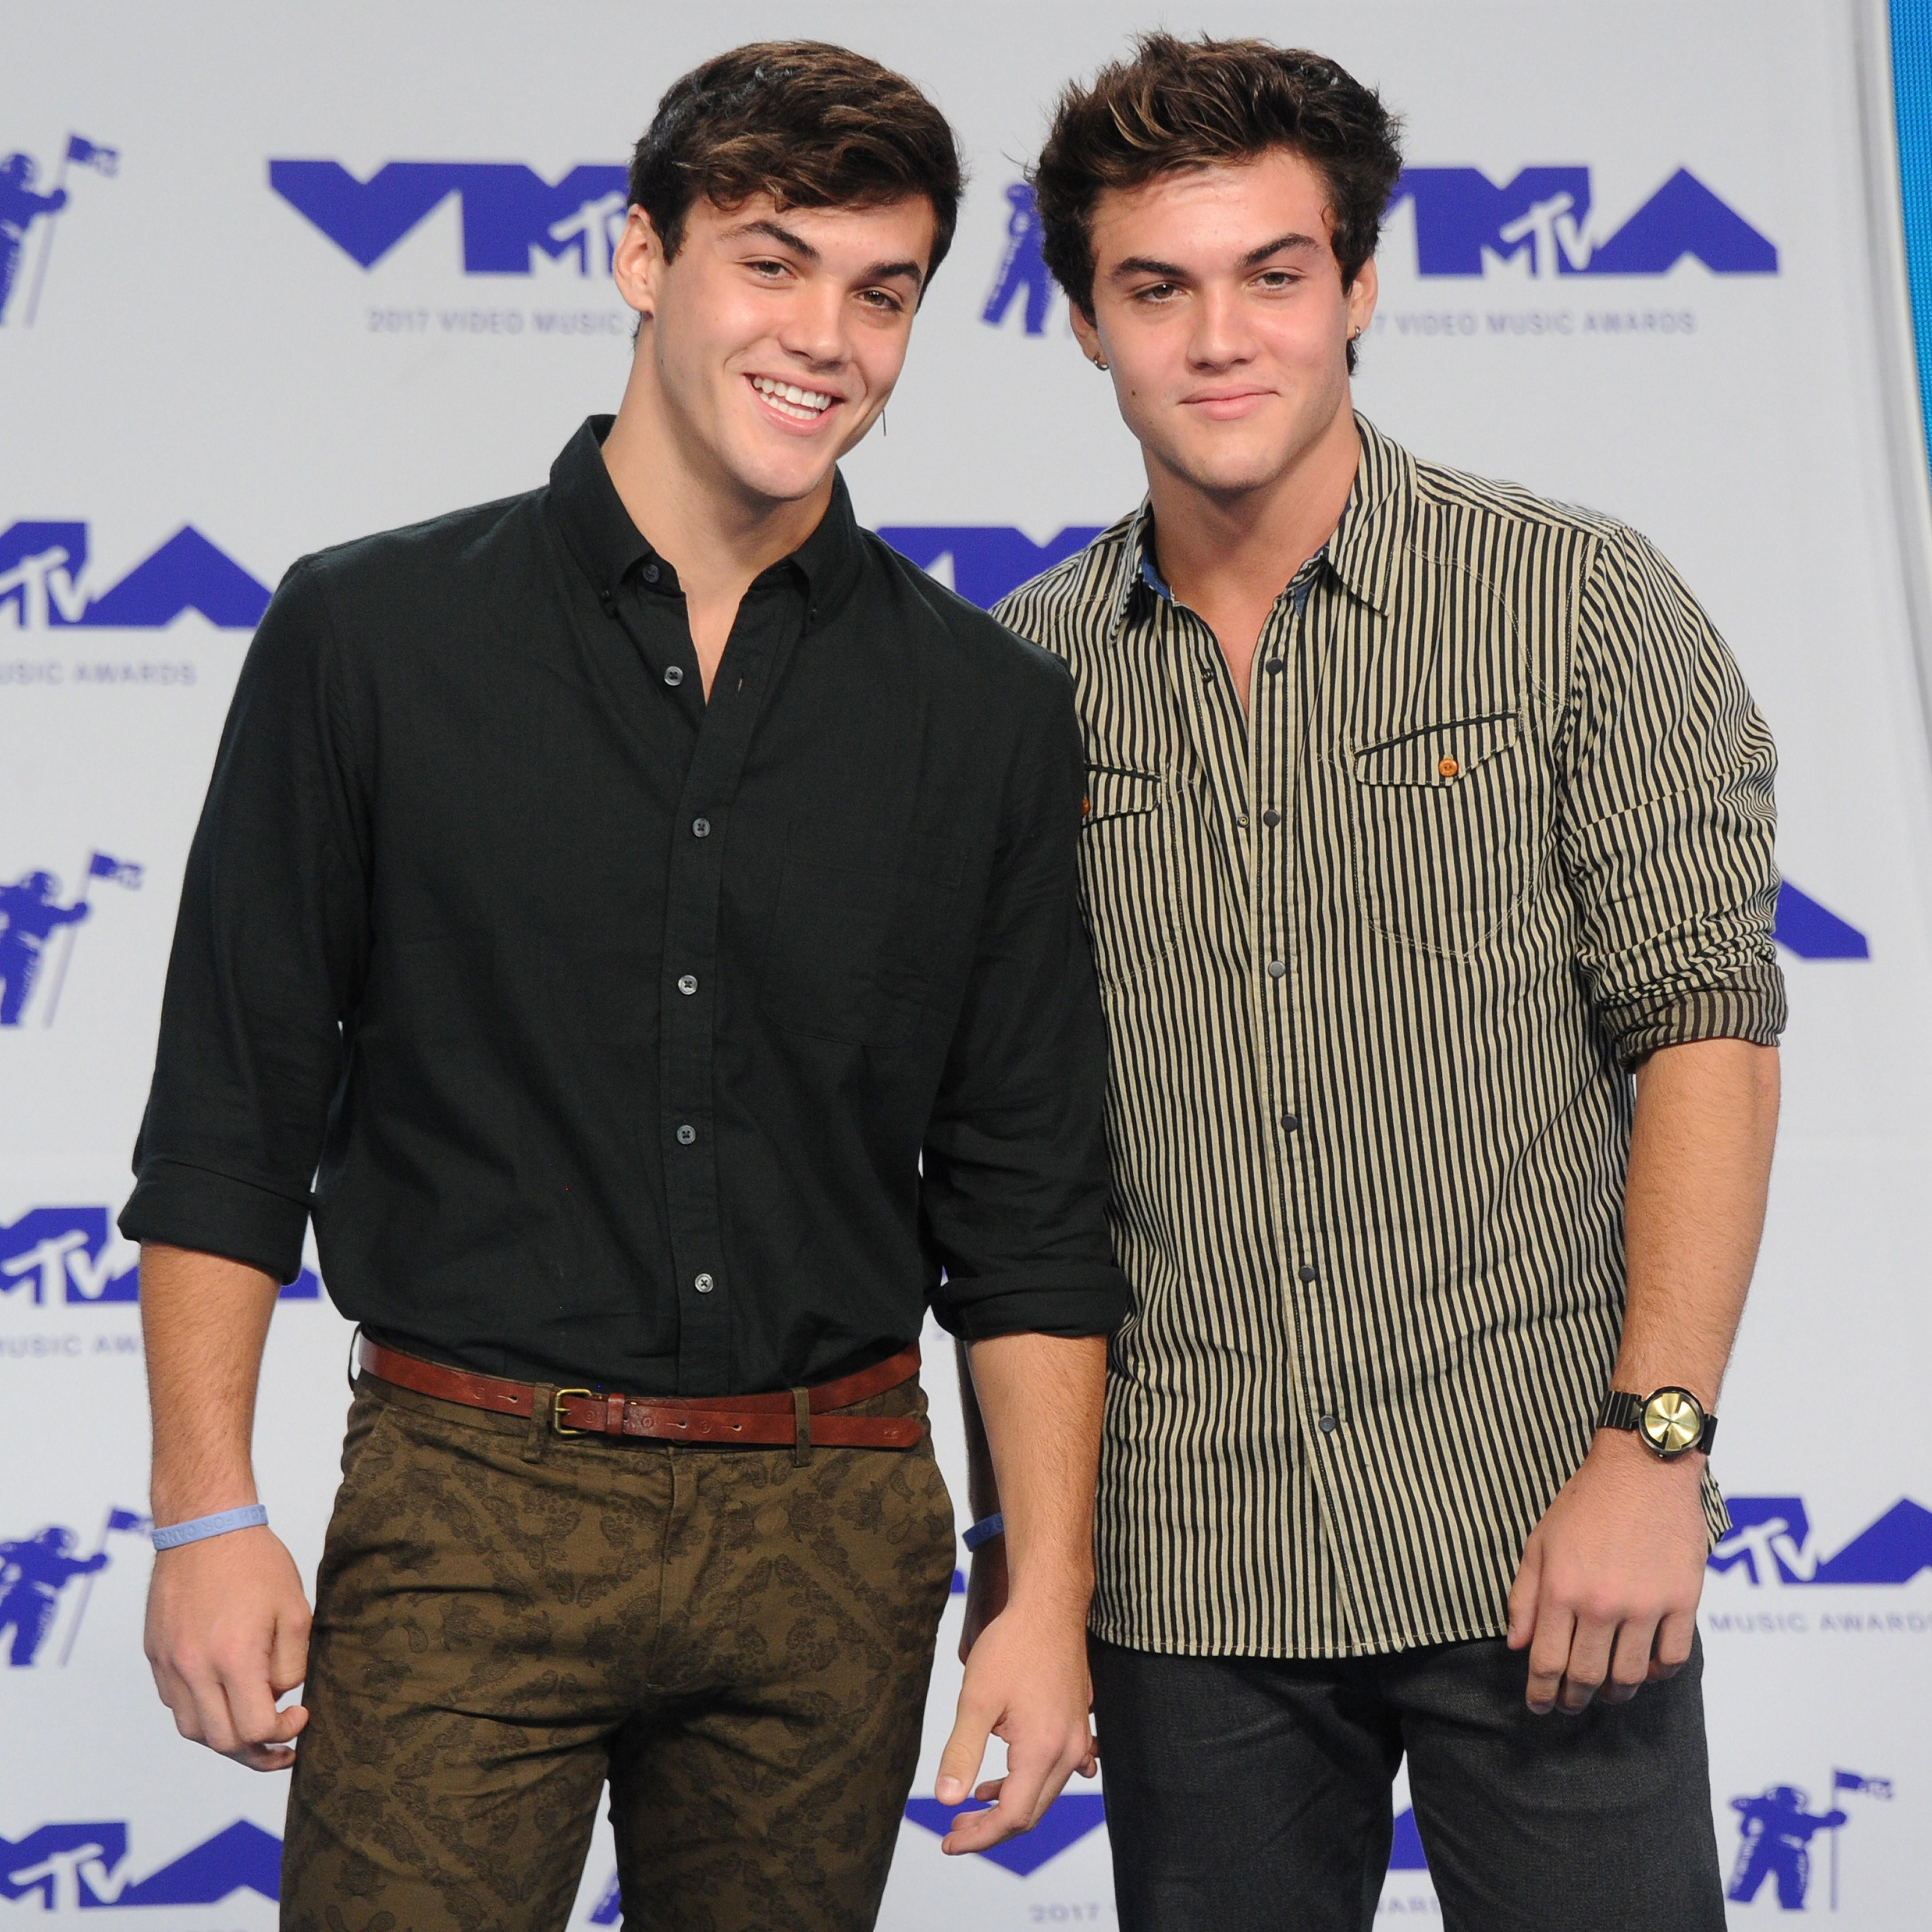 The Dolan Twins Announce They're Taking a Break from YouTube